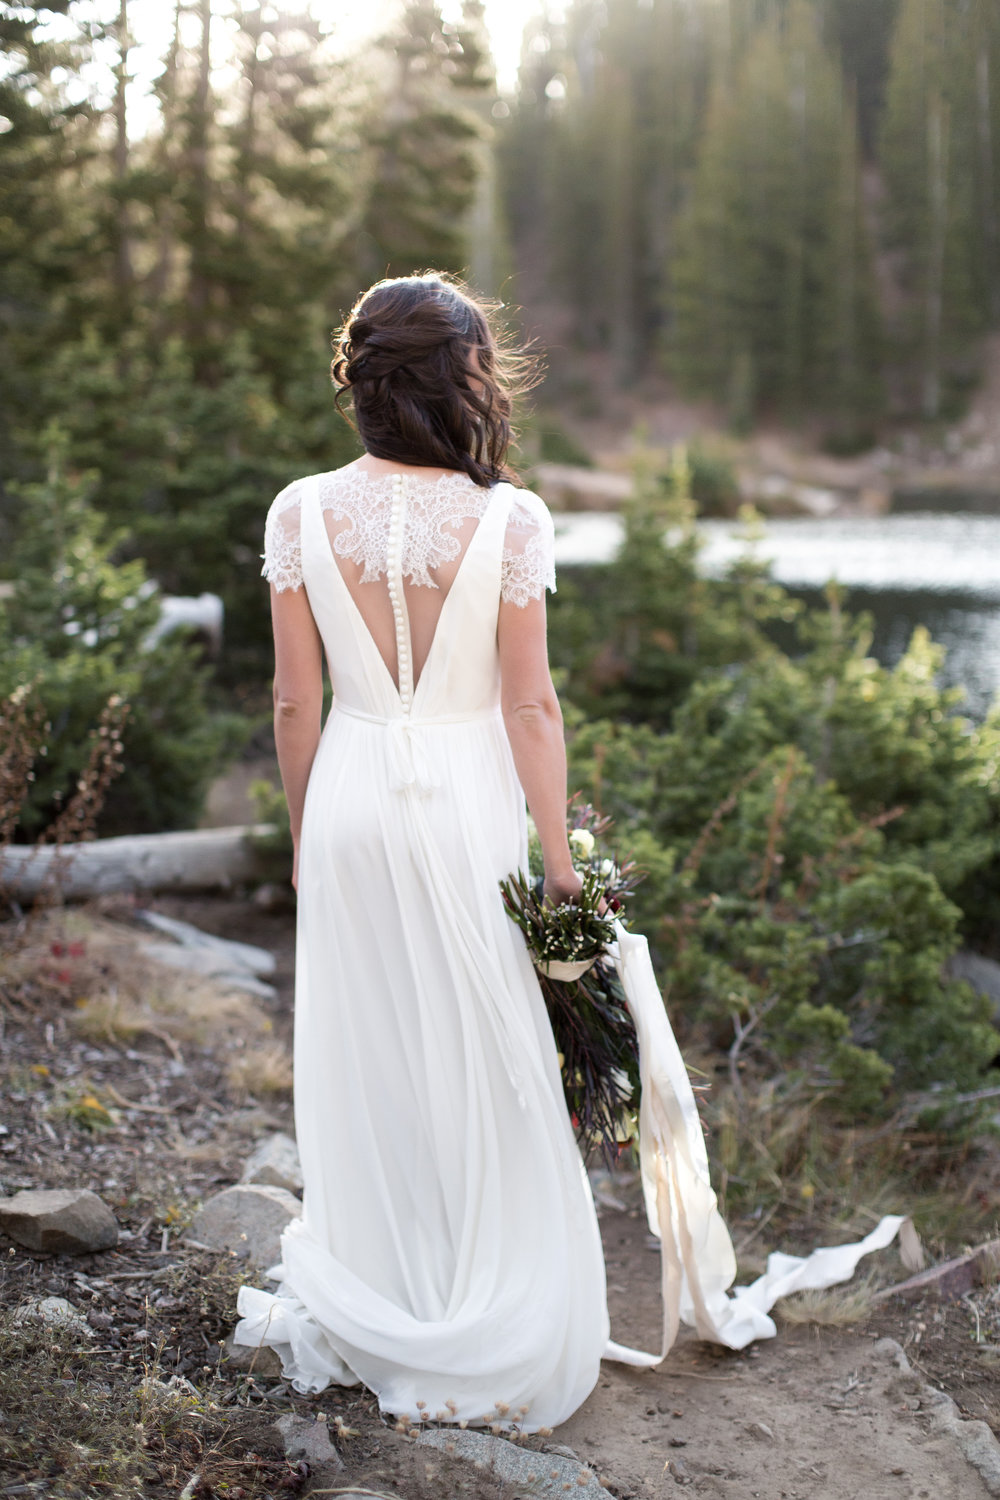 UtahValleyBrideShootTR2016 (108 of 110).jpg